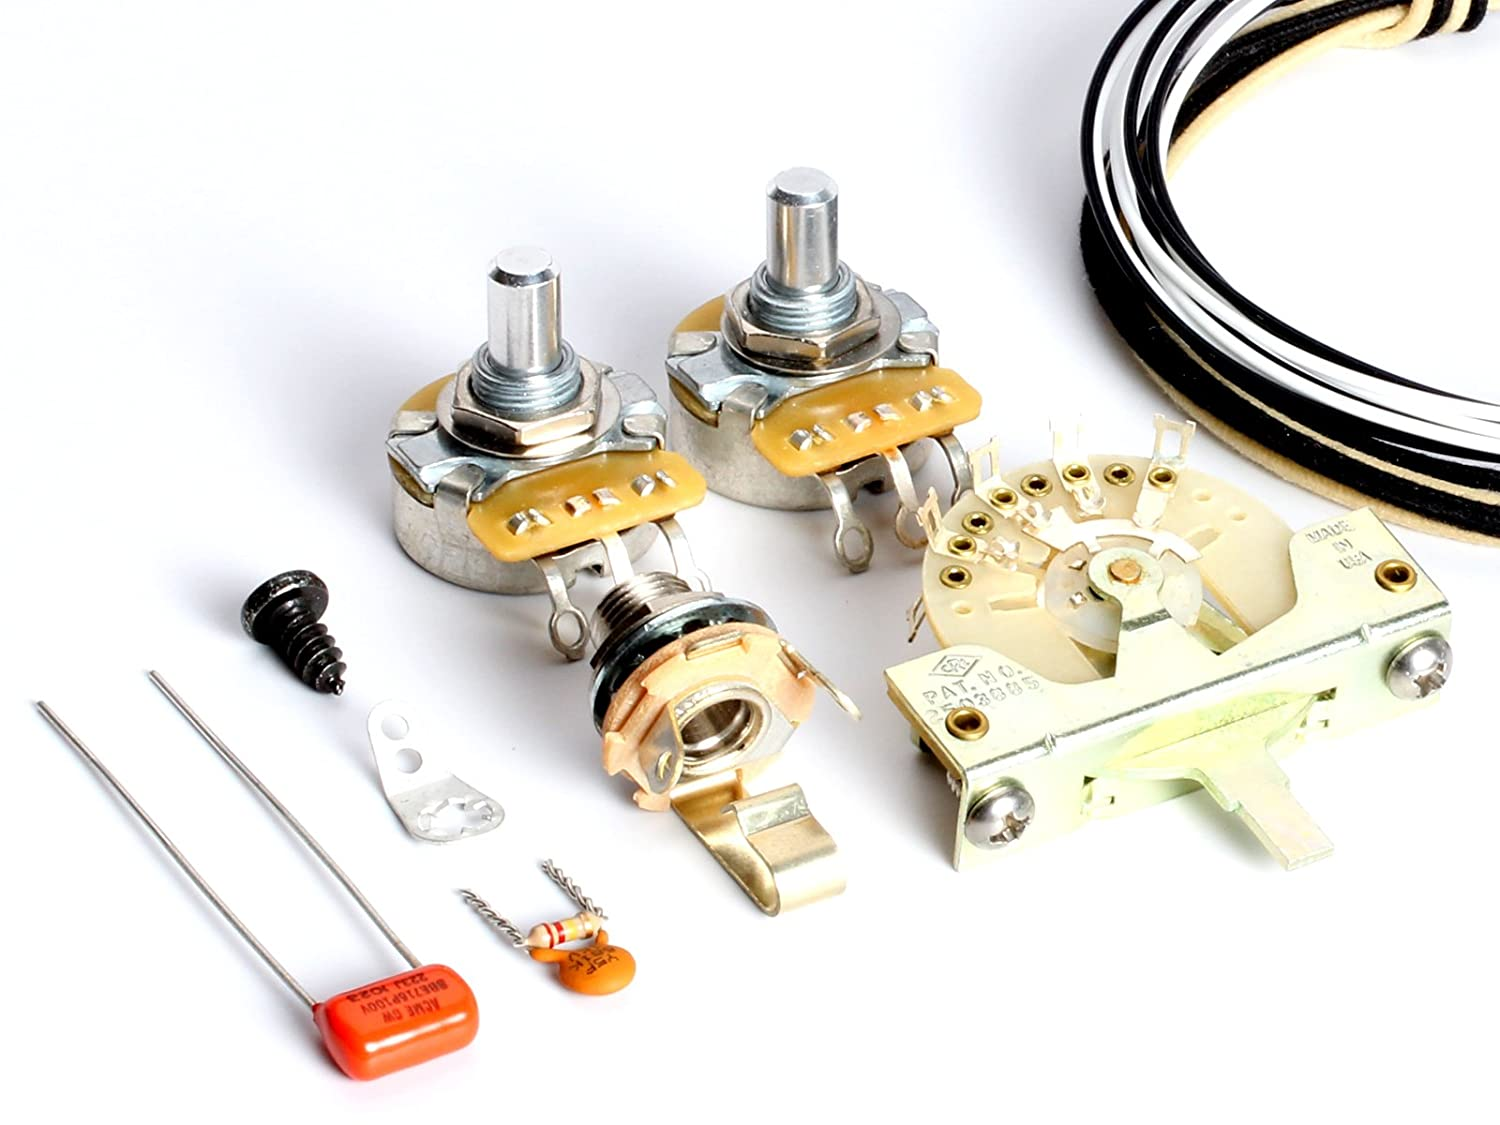 Toneshaper Guitar Wiring Kit For Fender Telecaster Ss1 3 Pickup Tele 5 Way Switch Diagram Modern Musical Instruments